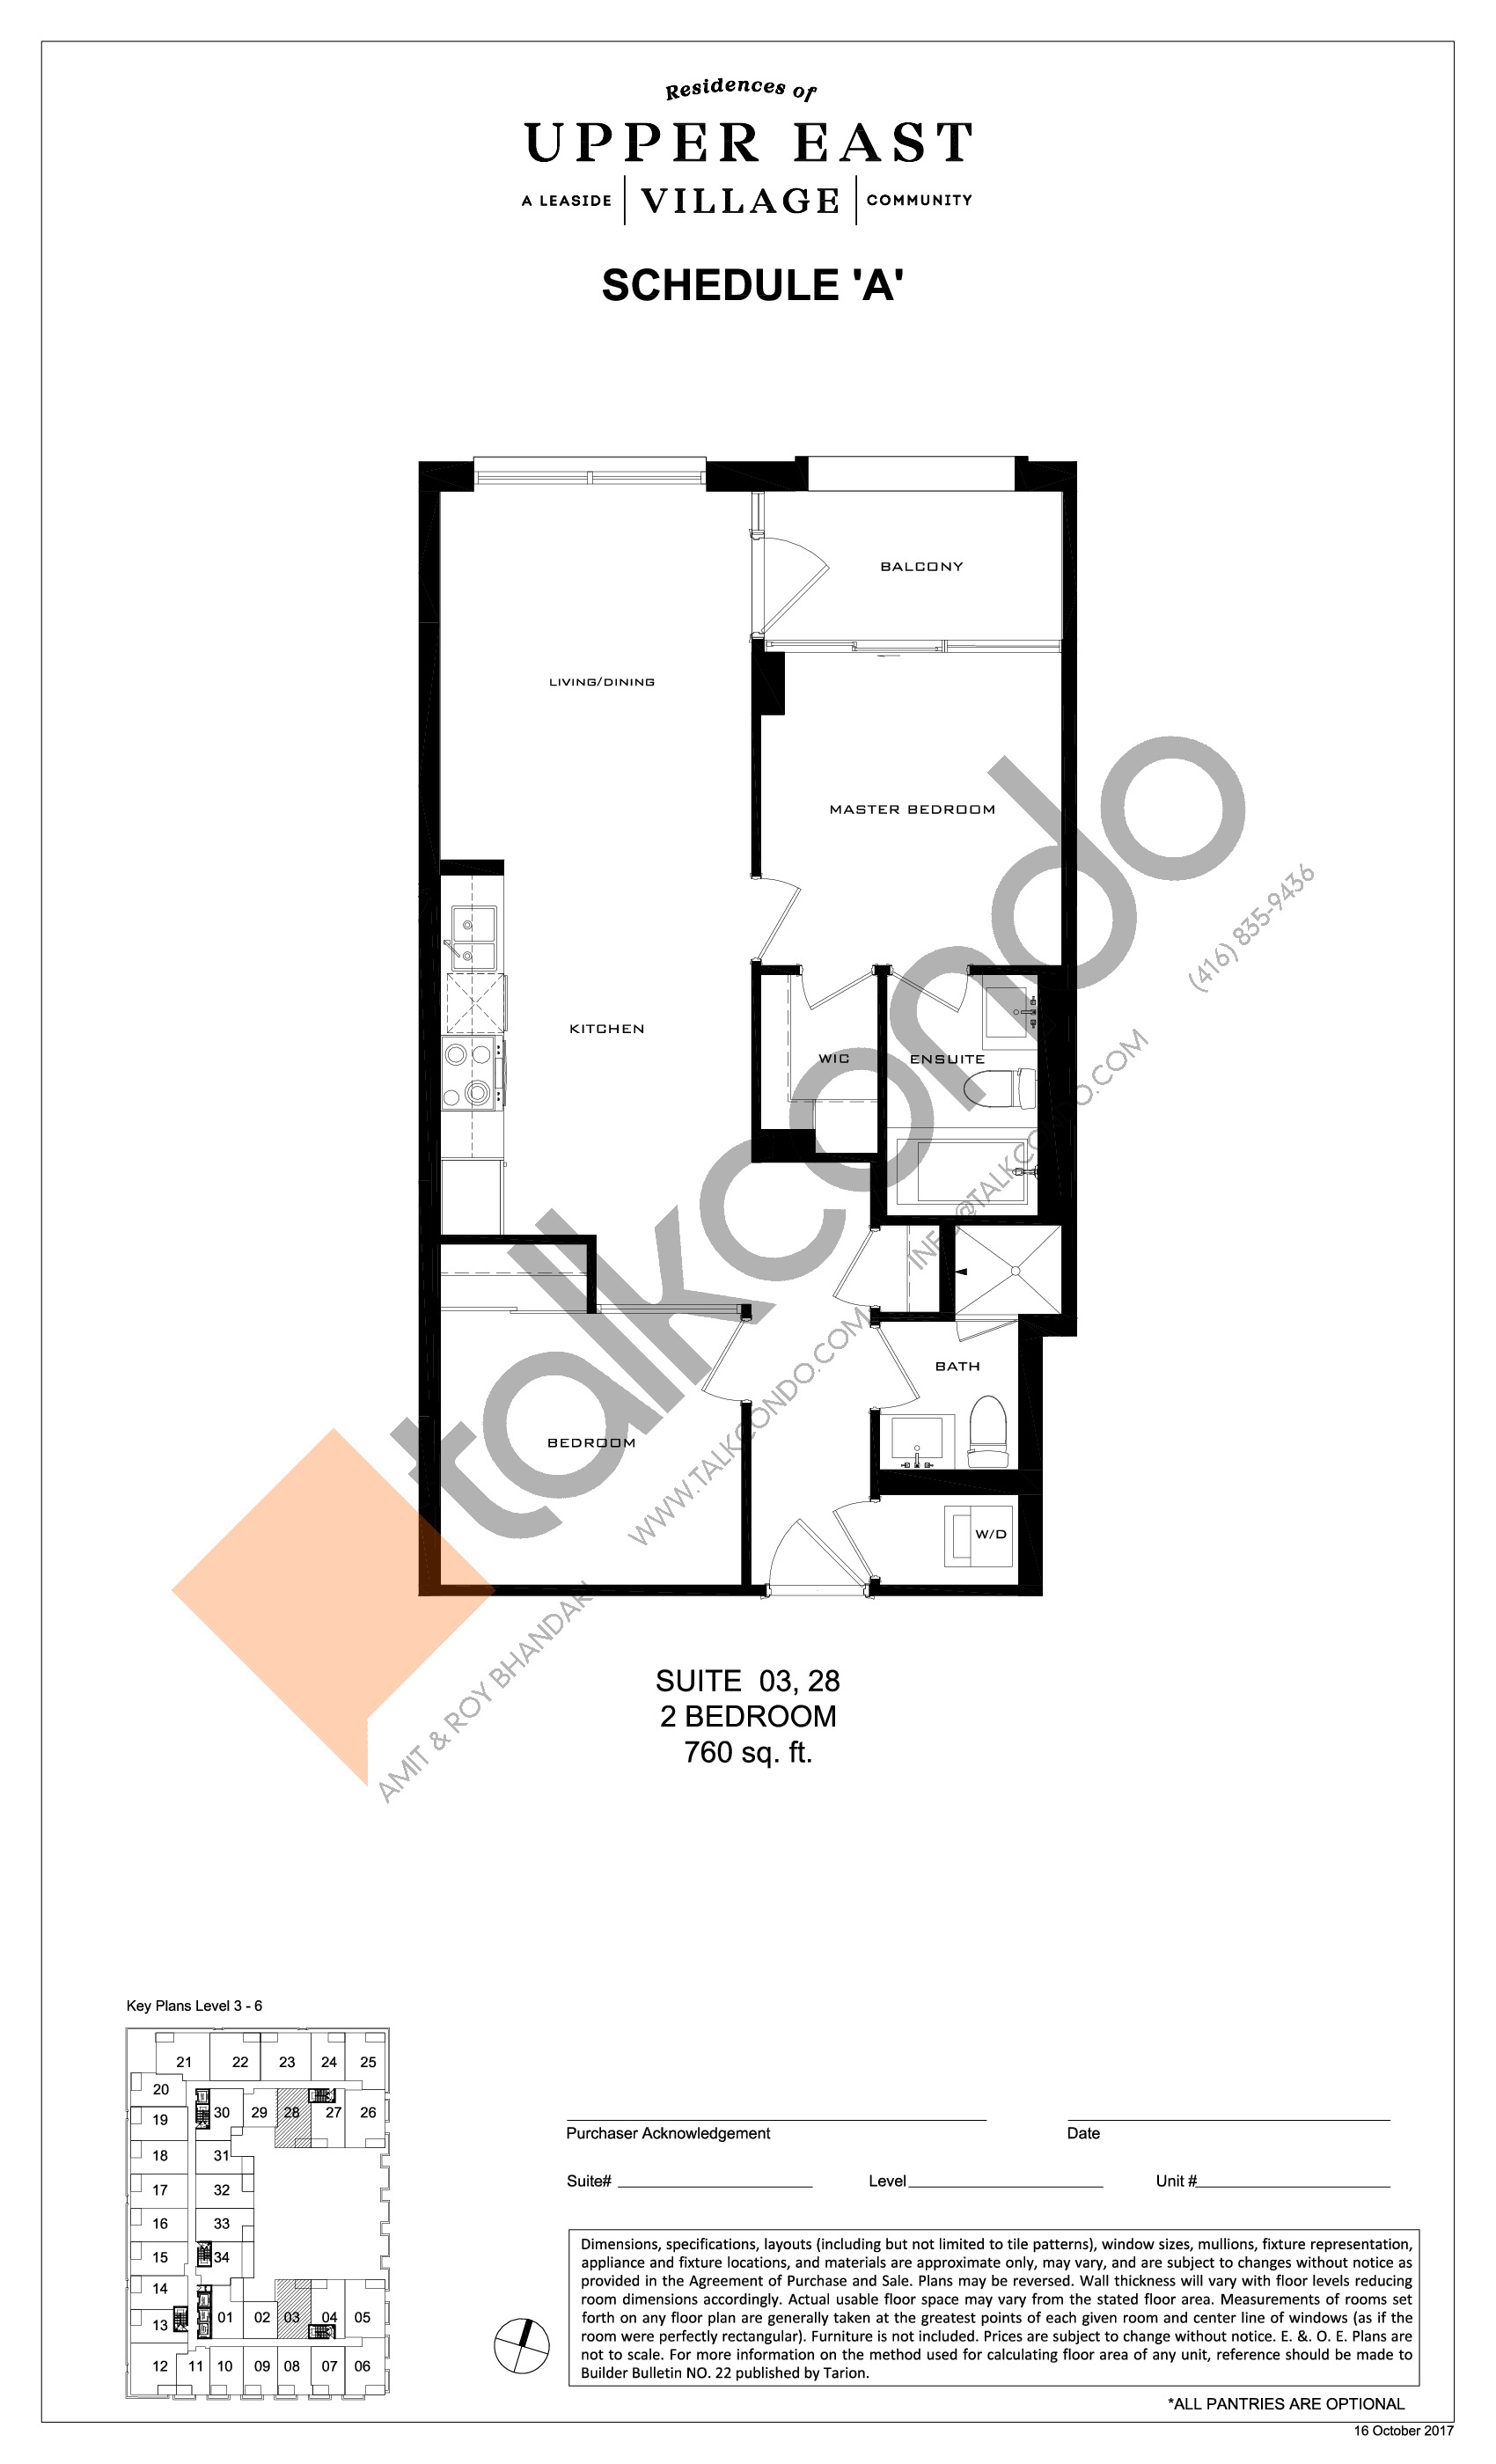 Suite 03, 28 Floor Plan at Upper East Village Condos - 760 sq.ft